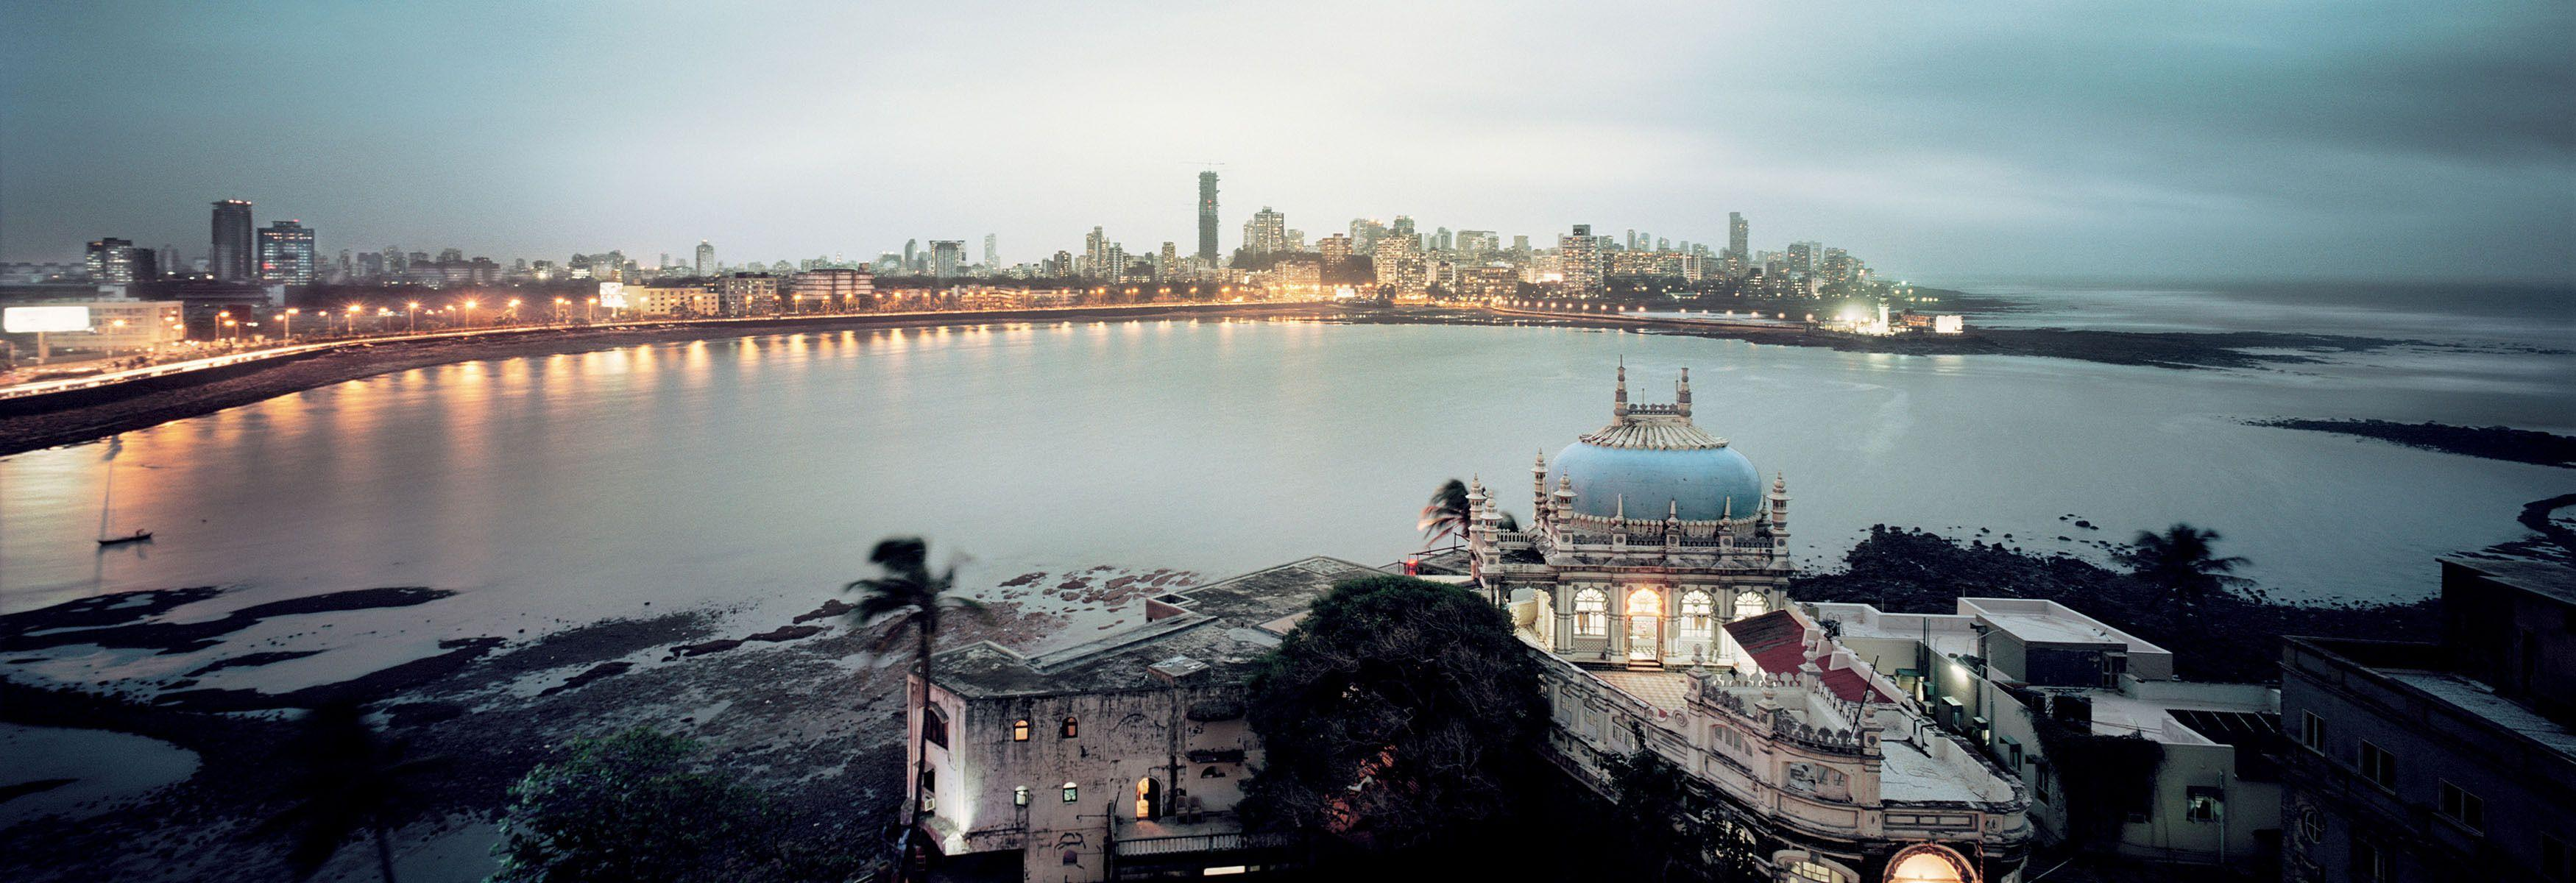 View on Mumbai wallpapers and image